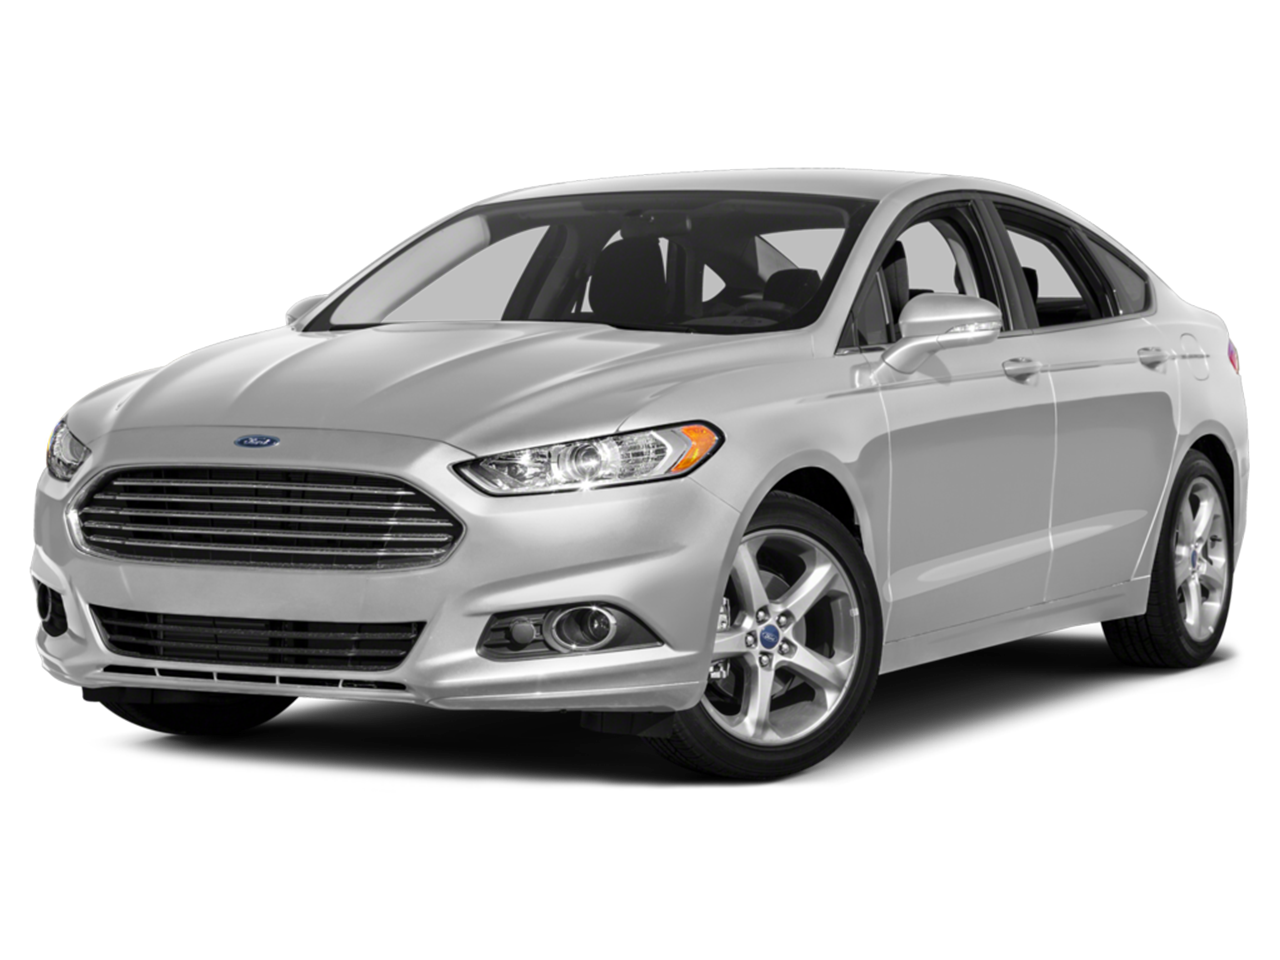 New Ford Taurus at Quirk Ford